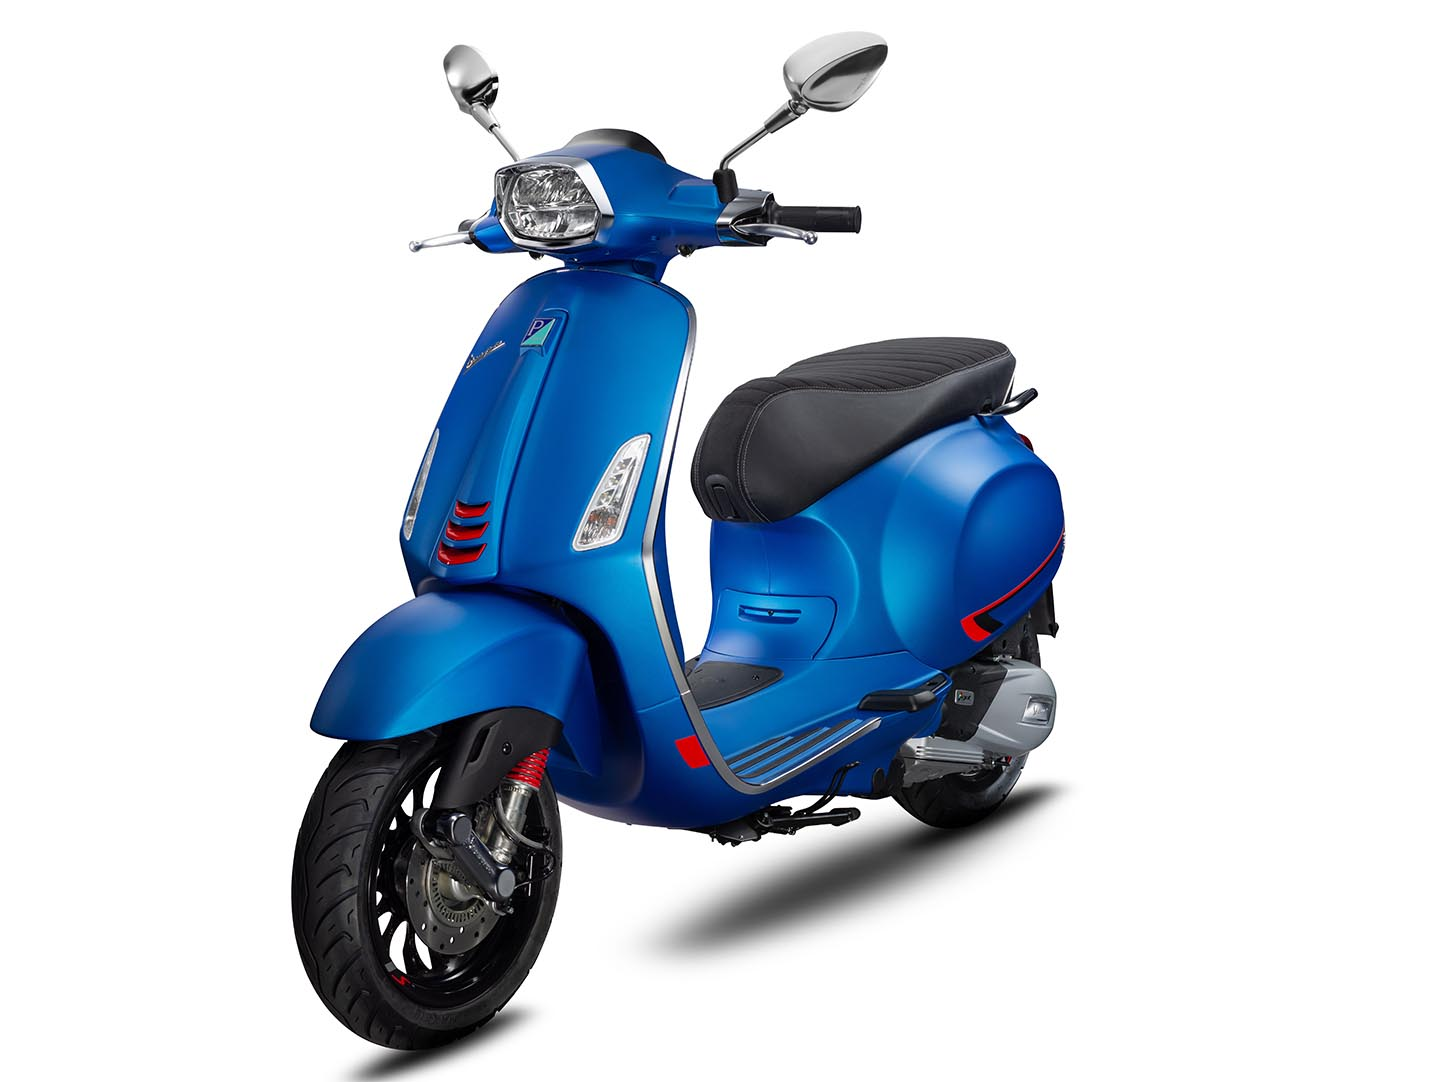 vespa-capture-one-catalog44460.jpg